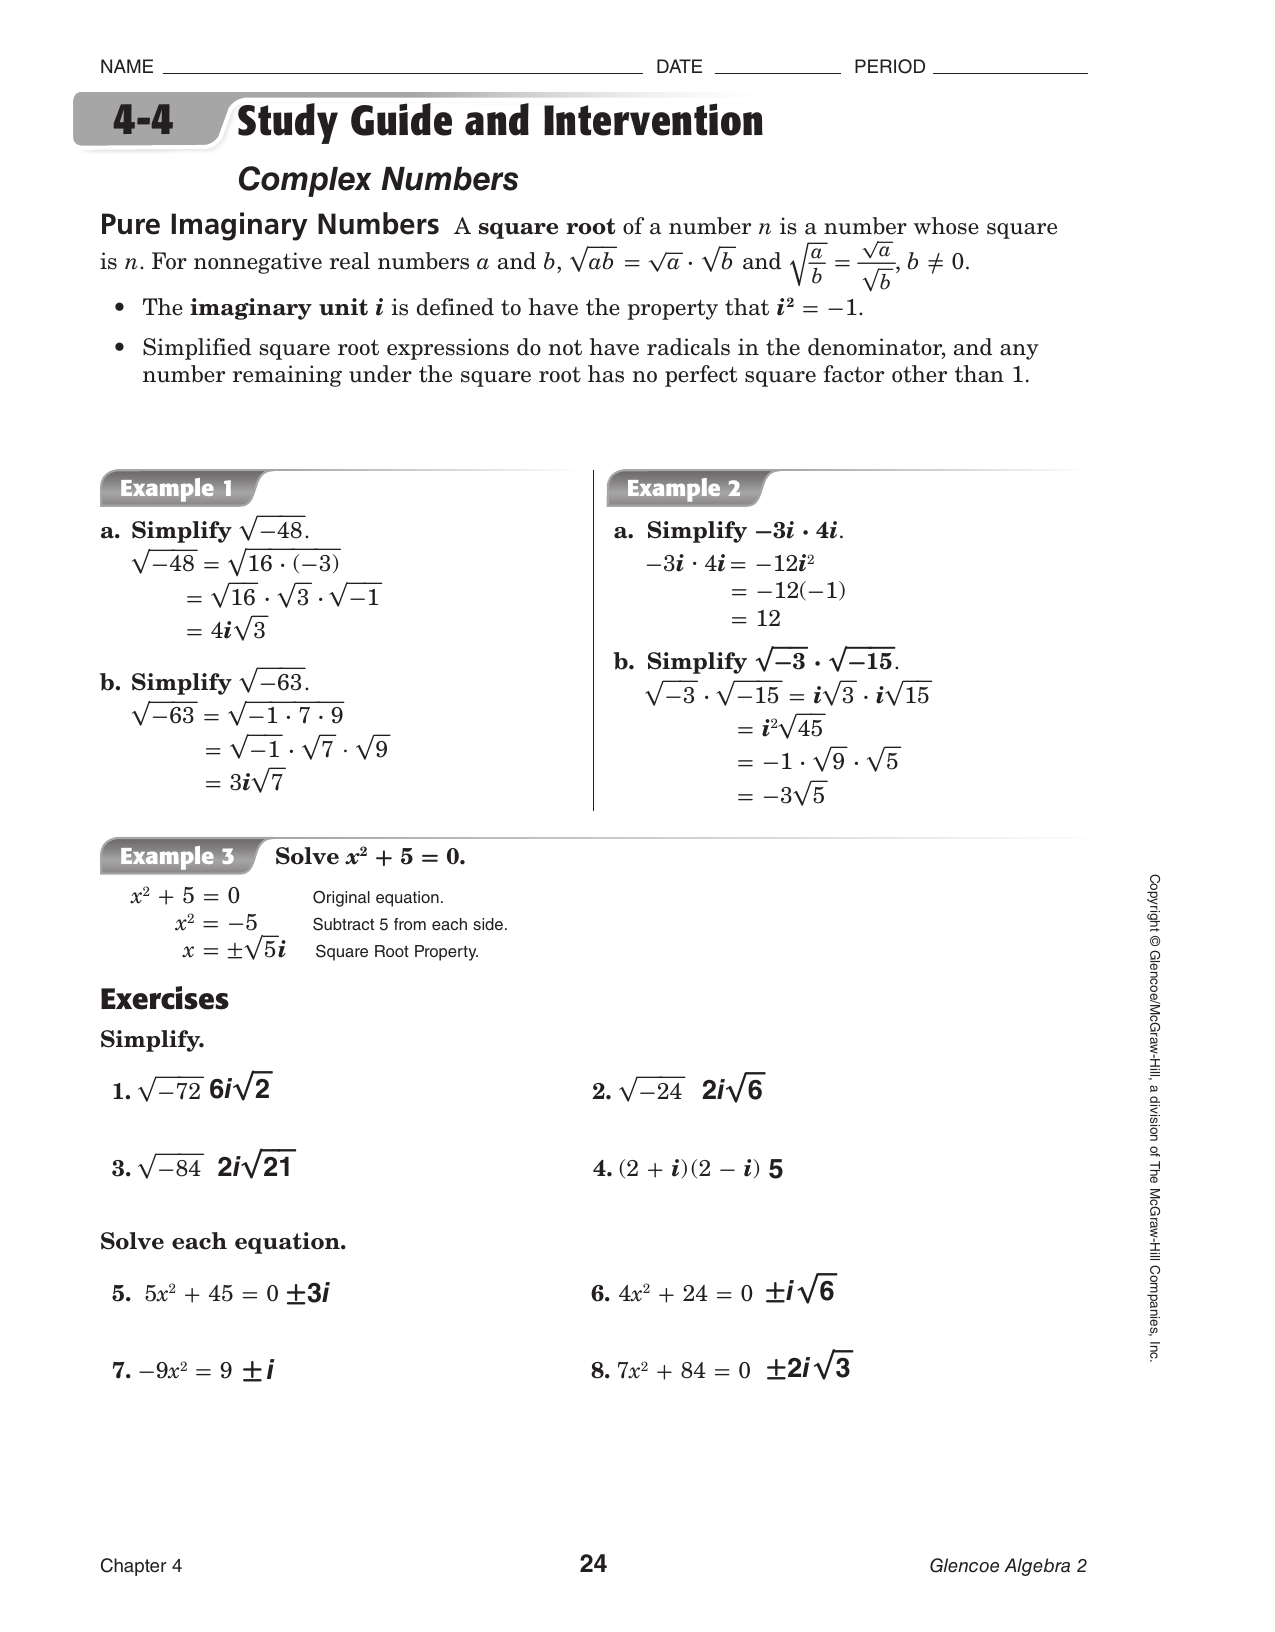 Operations With Imaginary Numbers Worksheet Answers